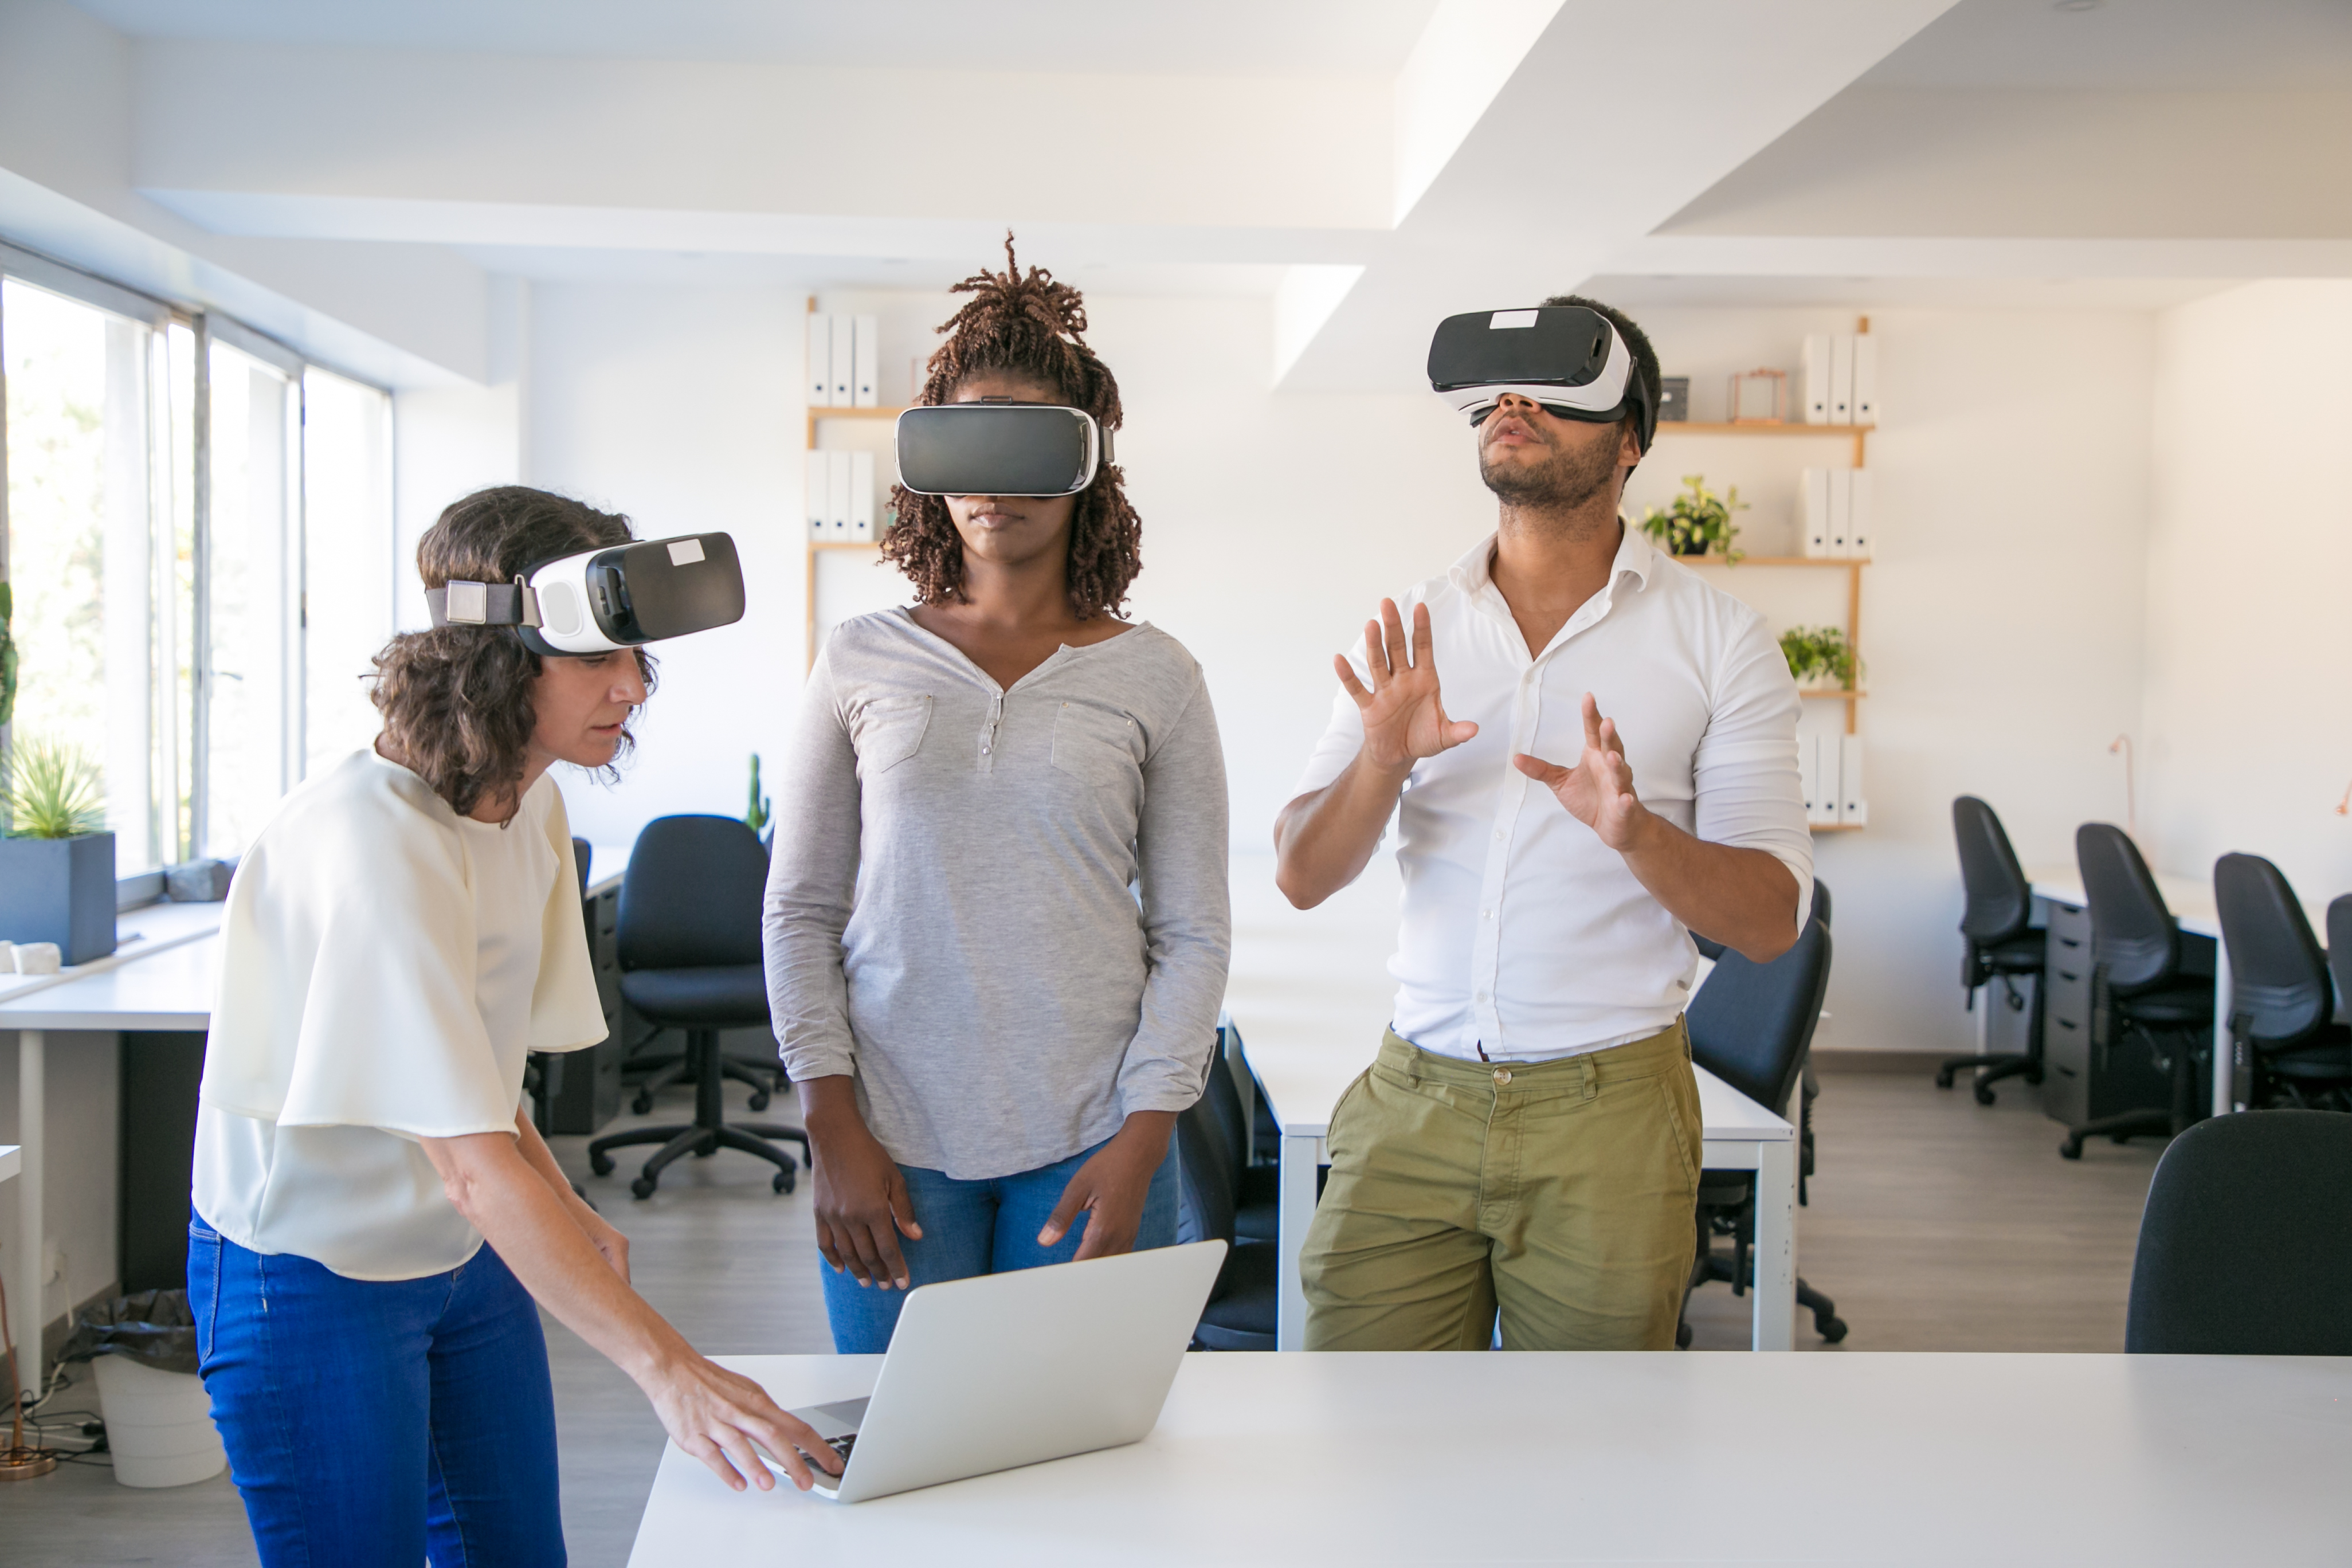 Team collaboration in virtual reality